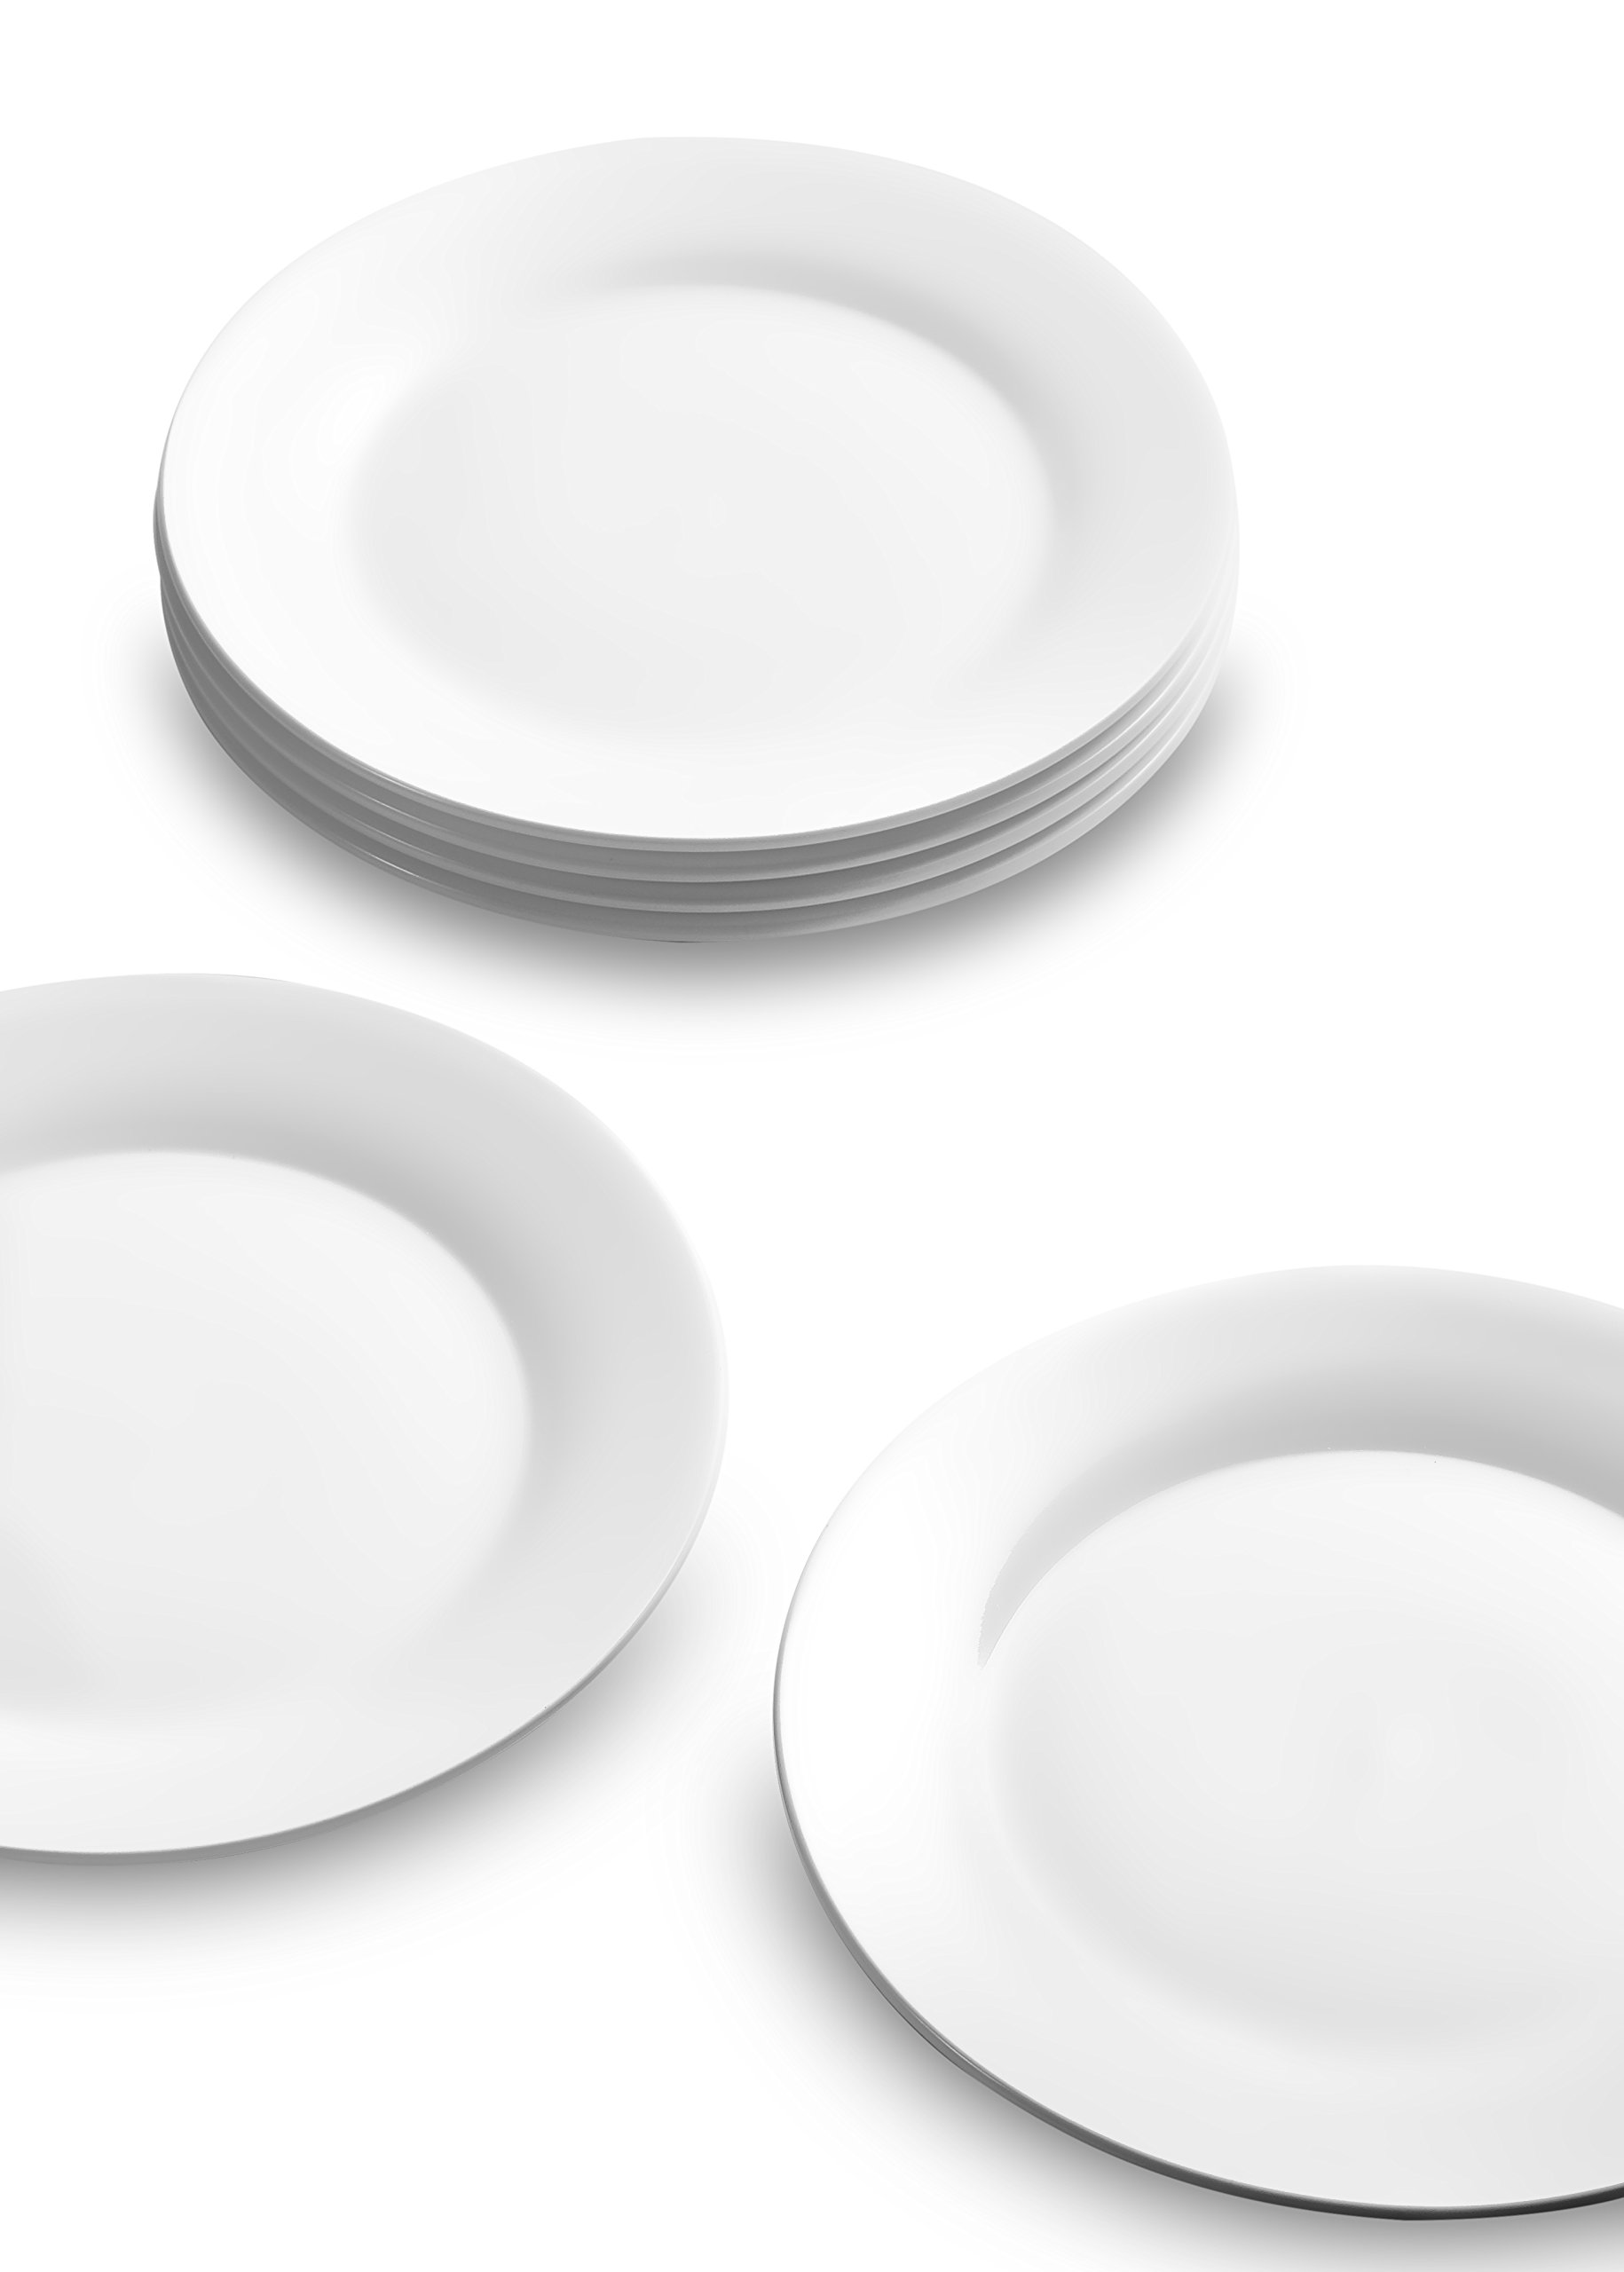 Nucookery 8 Inch White Dinner Plates | Porcelain Dishes | Medium, Microwave-Safe, Dishwasher-Safe 6pc Ceramic Dinnerware Set (8 Inch) by Nucookery (Image #3)